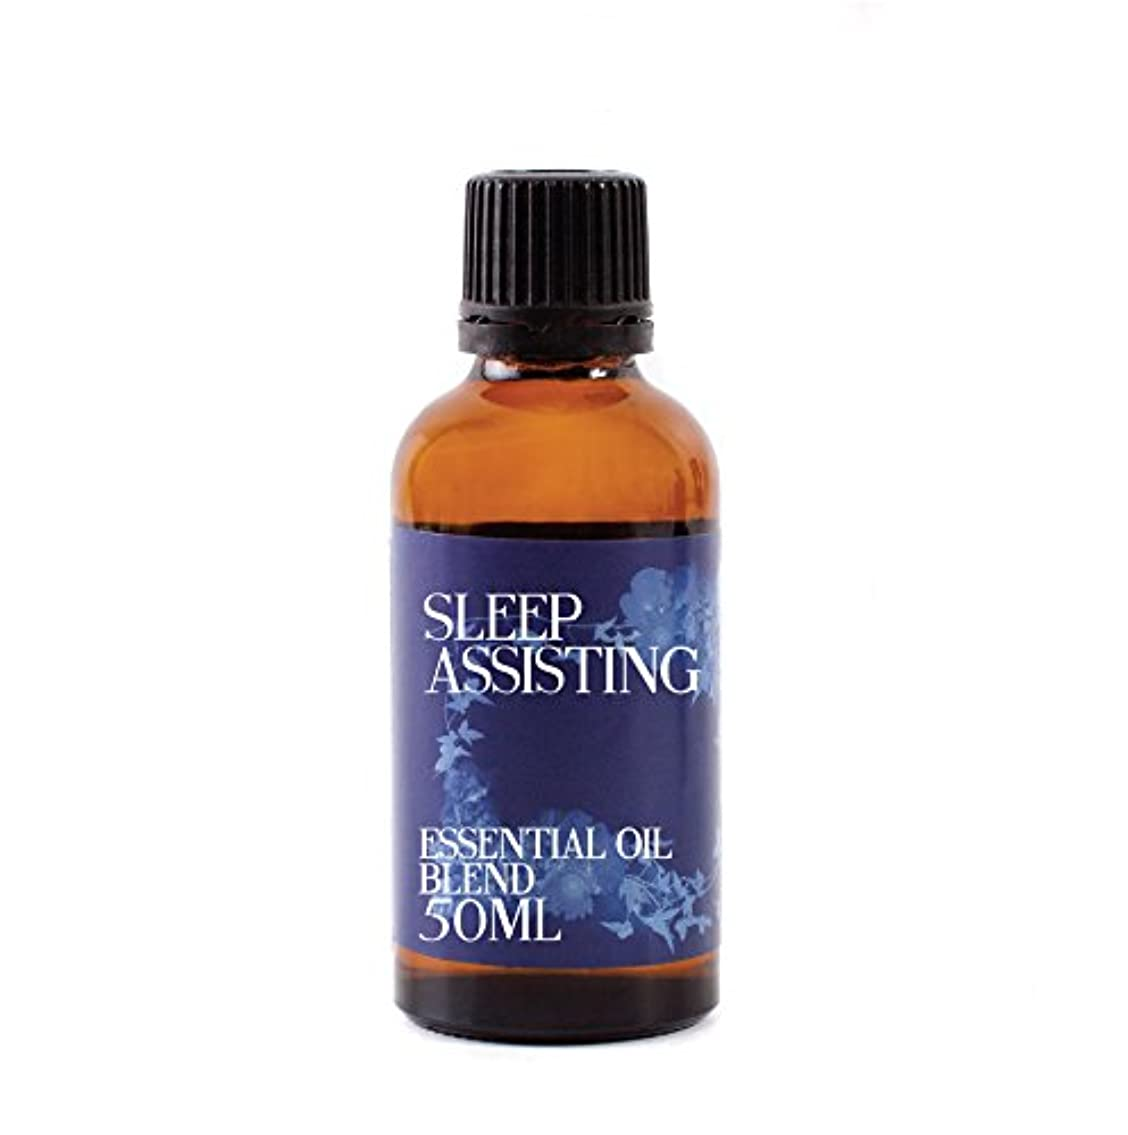 政治家の香り遊び場Mystix London | Sleep Assisting Essential Oil Blend - 50ml - 100% Pure